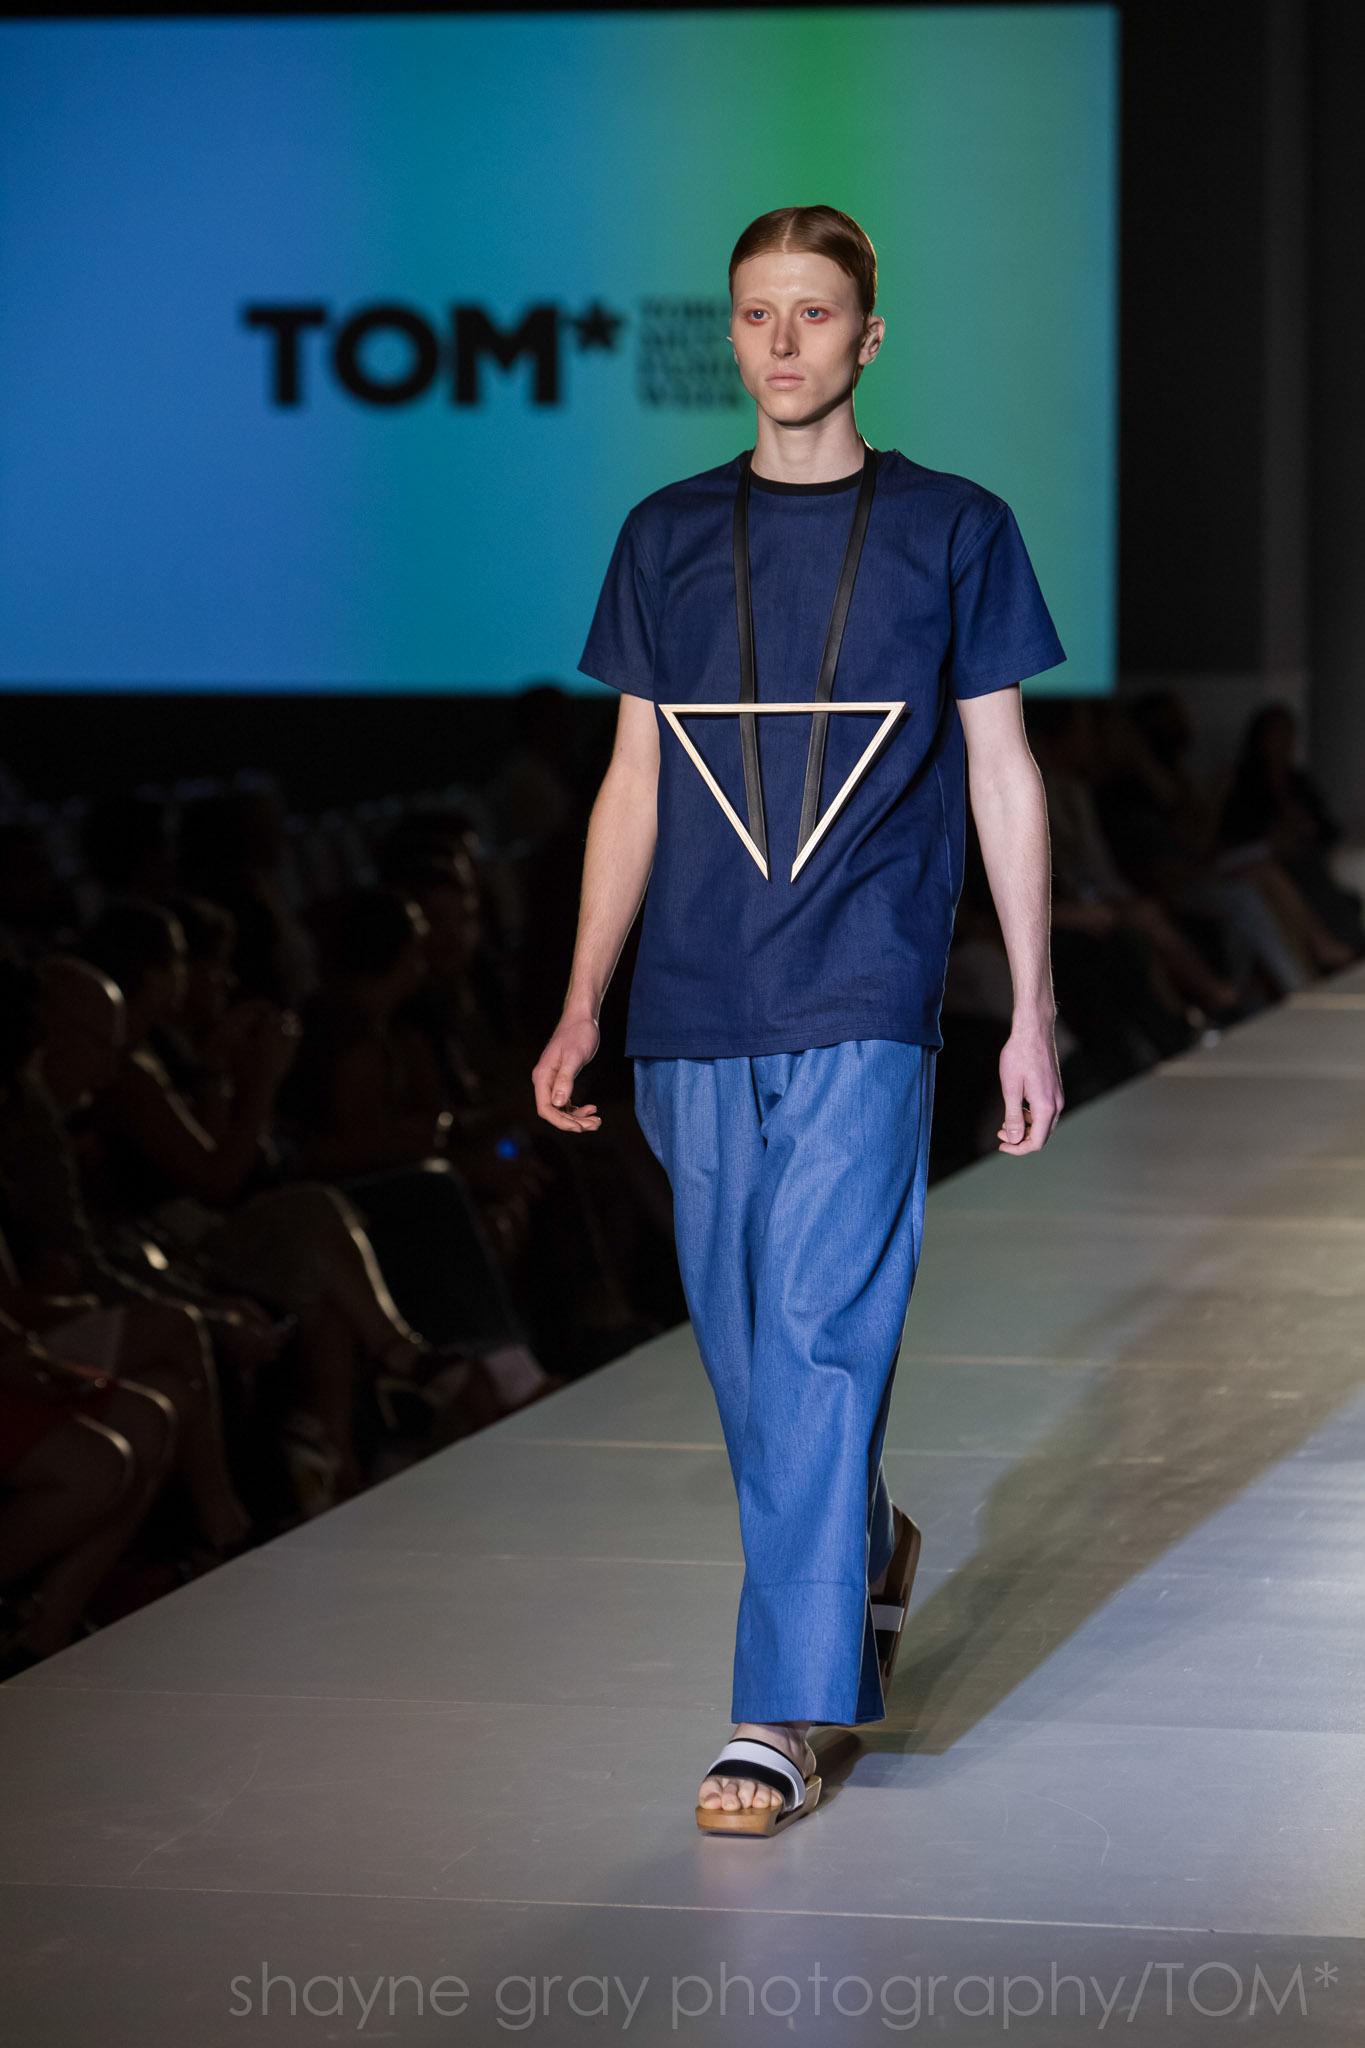 Shayne-Gray-Toronto-men's-fashion_week-TOM-wrkdept-8681.jpg